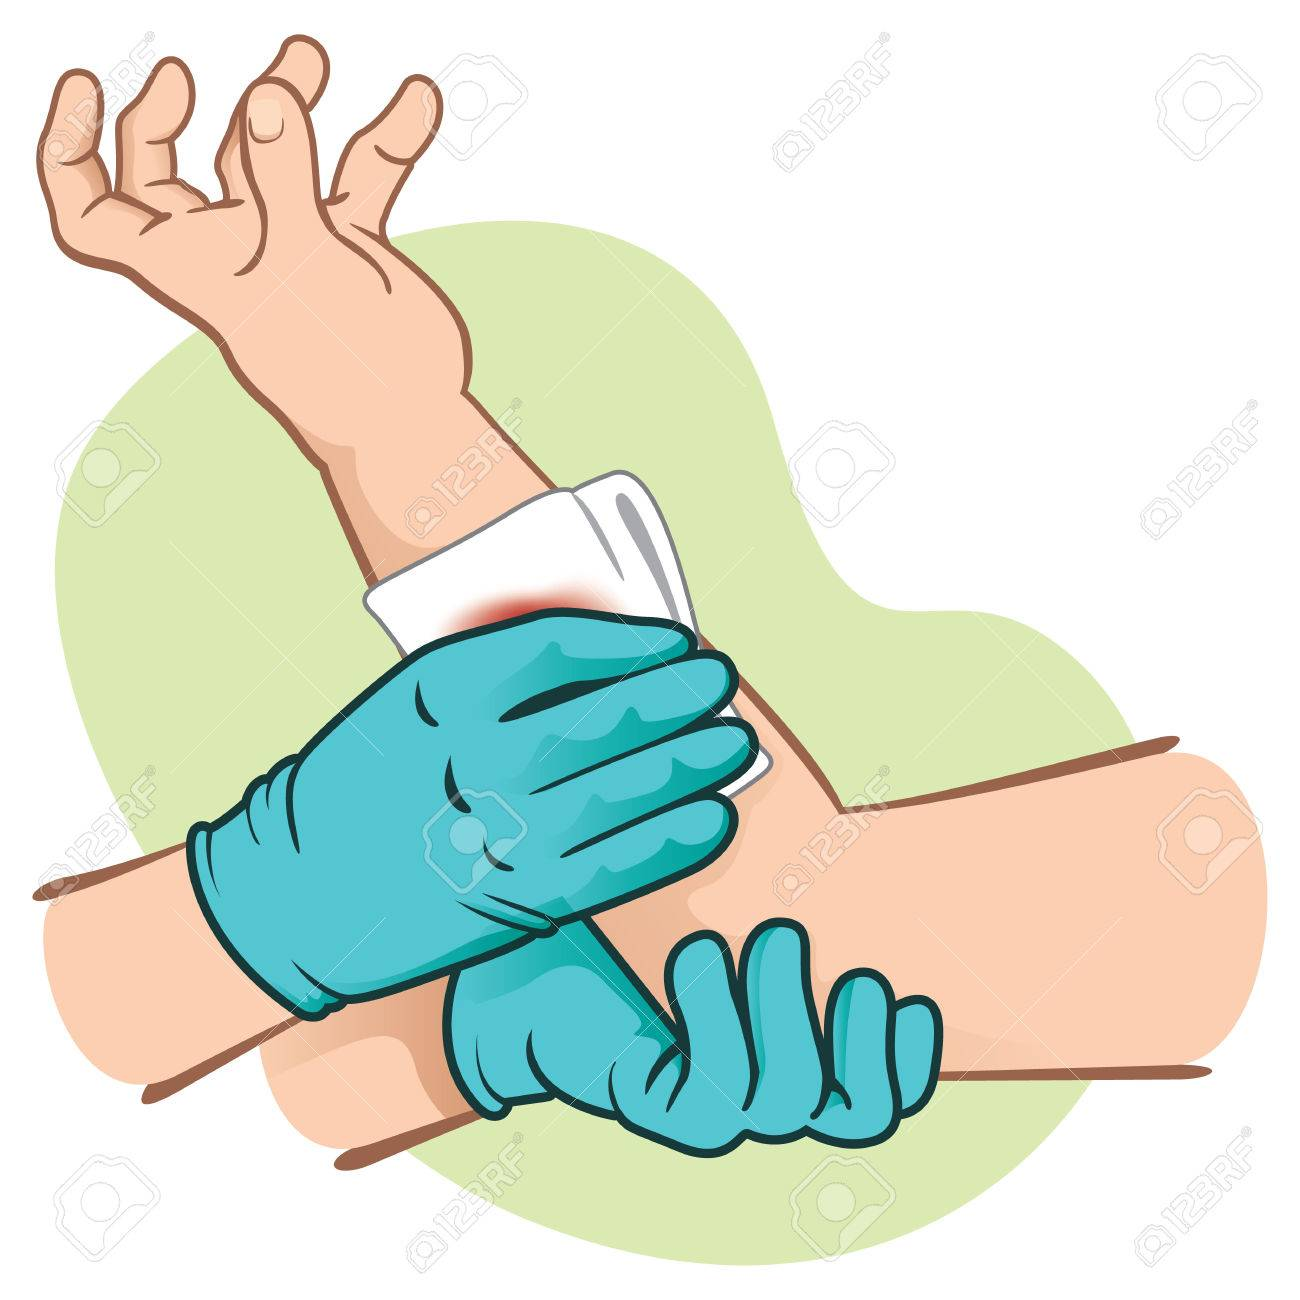 Gloves Clip Art Medical Supplies – Clipart Download